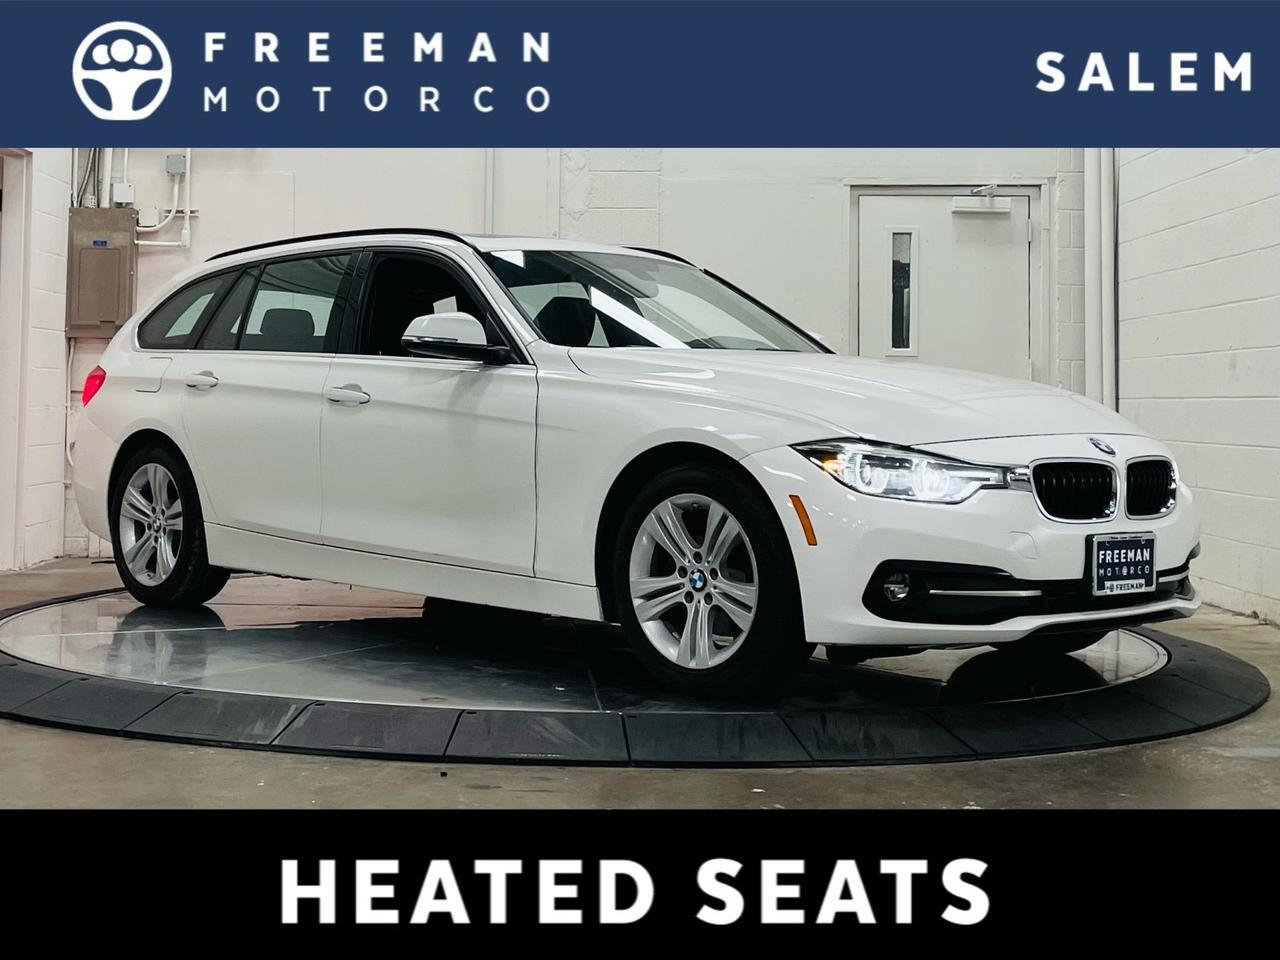 2018 BMW 328d xDrive Diesel Wagon Heated Seats Salem OR